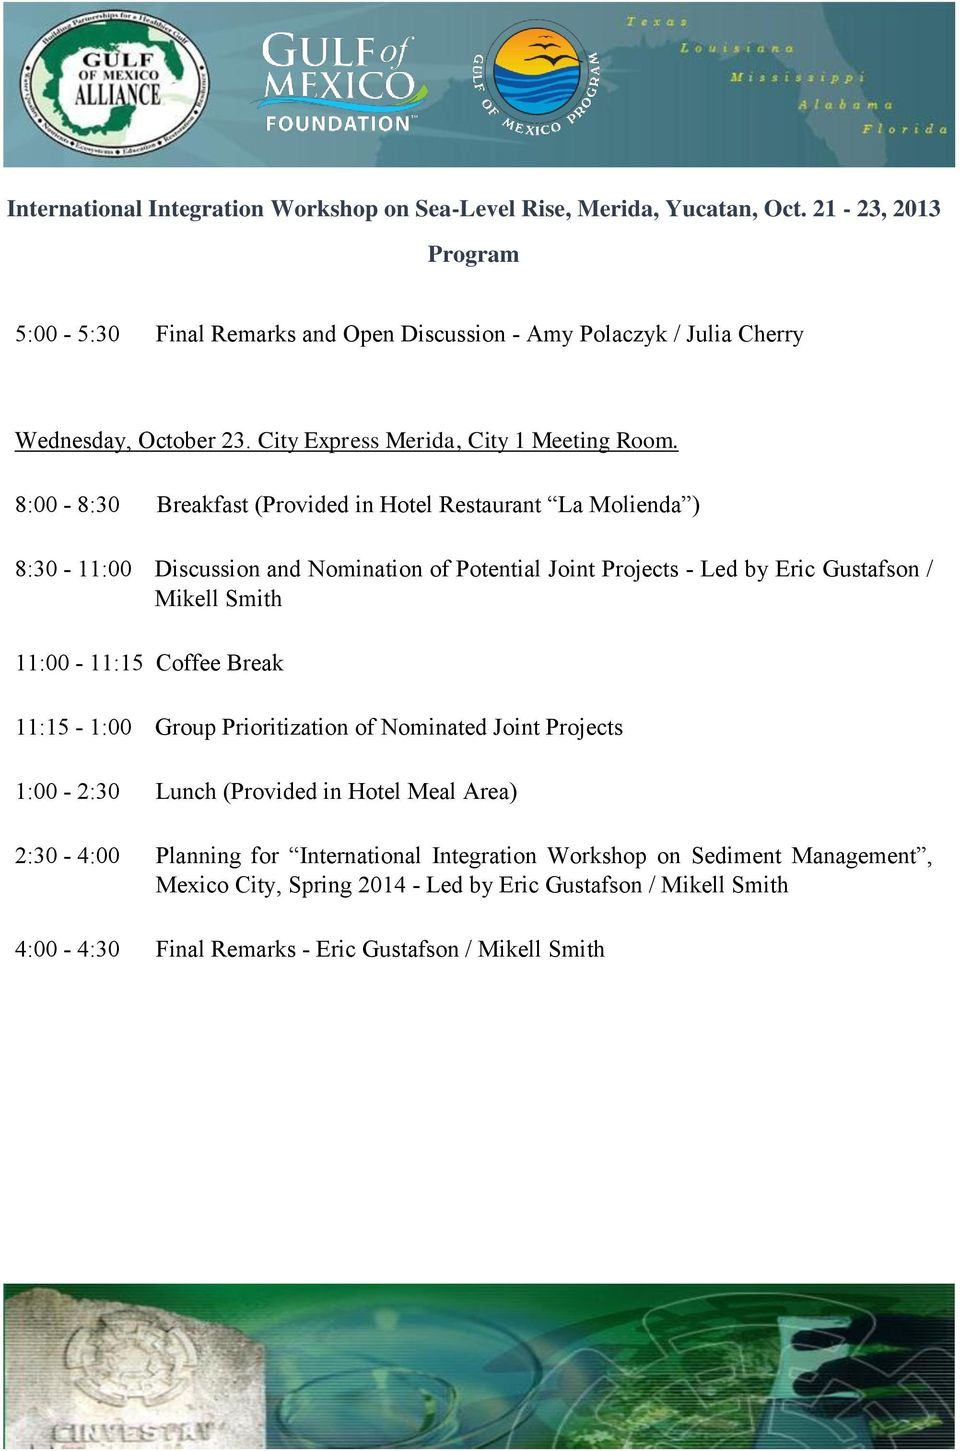 Mikell Smith 11:00-11:15 Coffee Break 11:15-1:00 Group Prioritization of Nominated Joint Projects 1:00-2:30 Lunch (Provided in Hotel Meal Area) 2:30-4:00